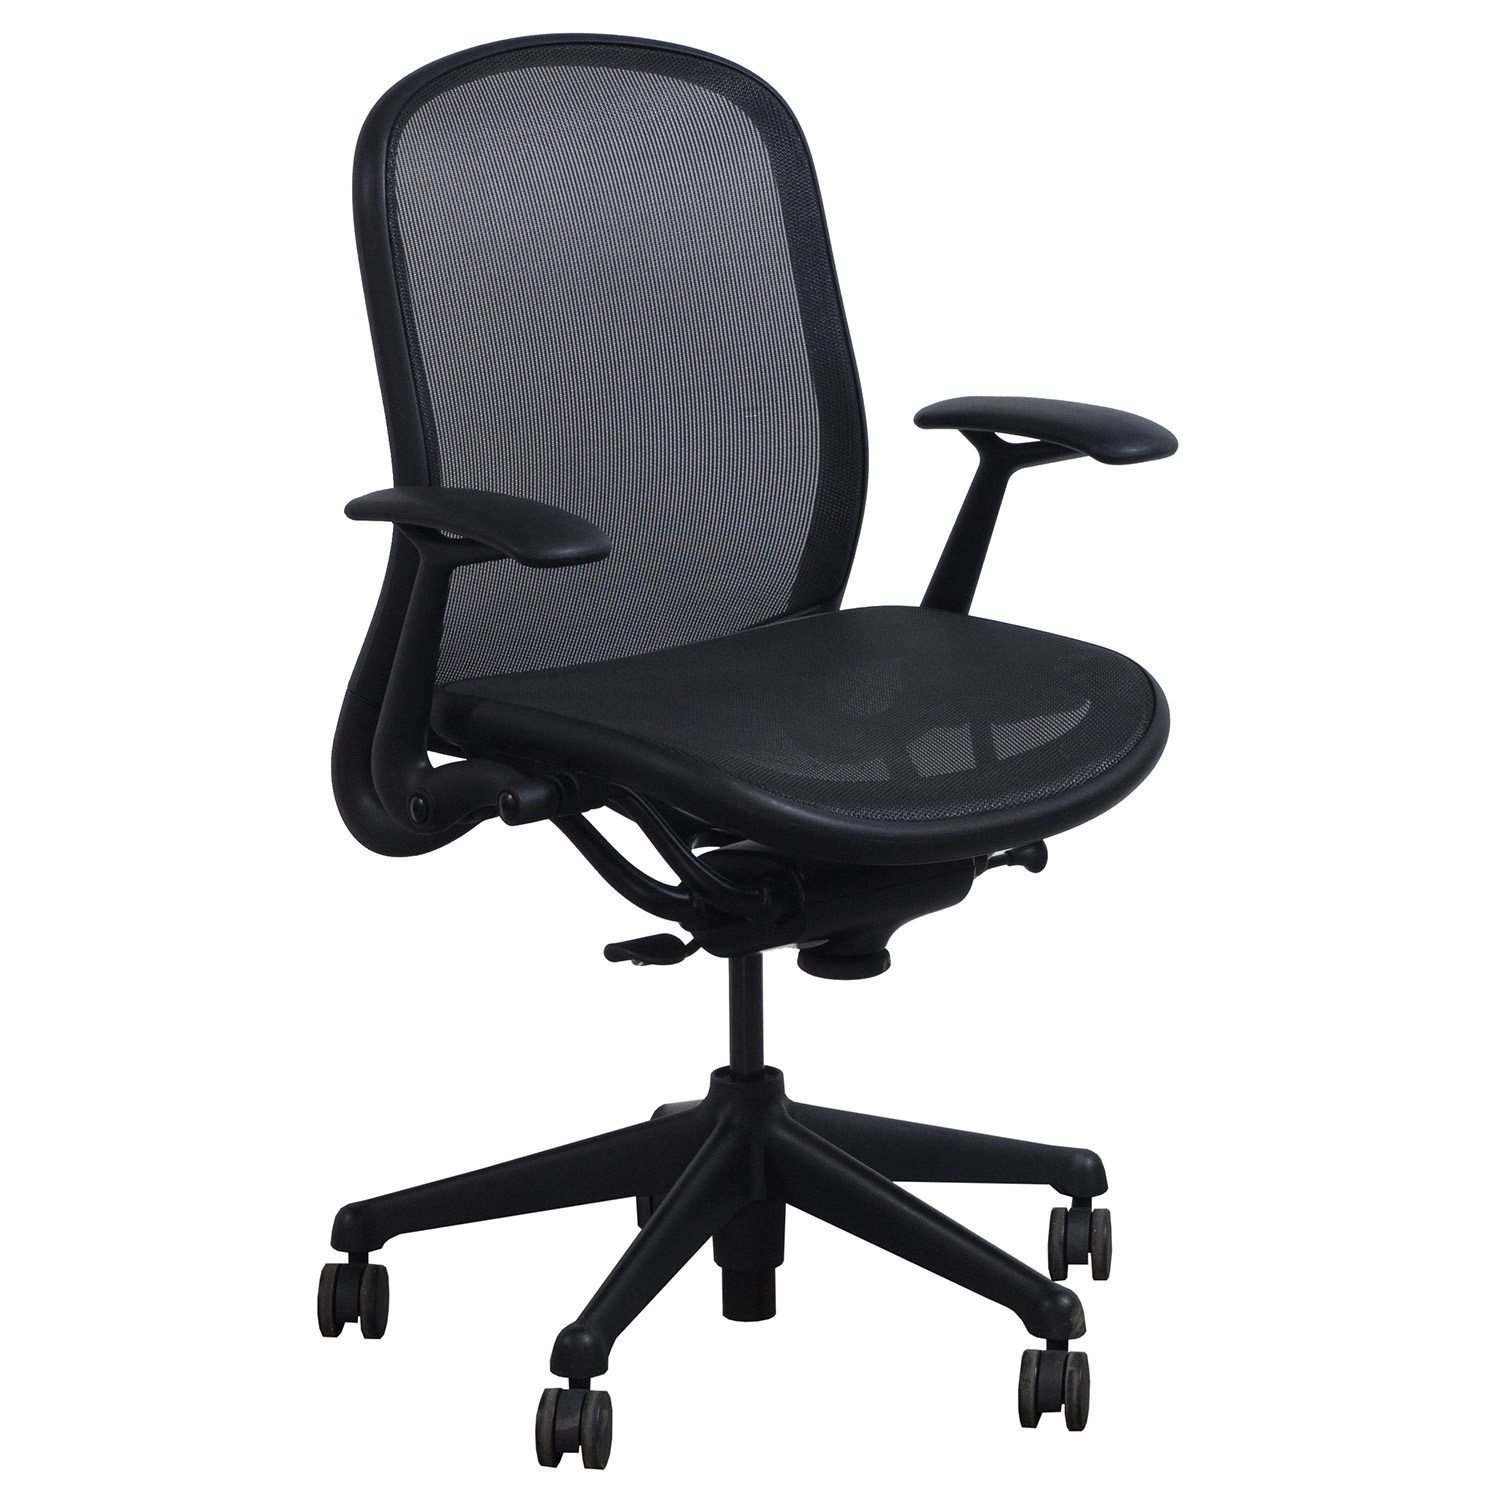 used conference room chairs barber chair parts uk knoll chadwick mesh black